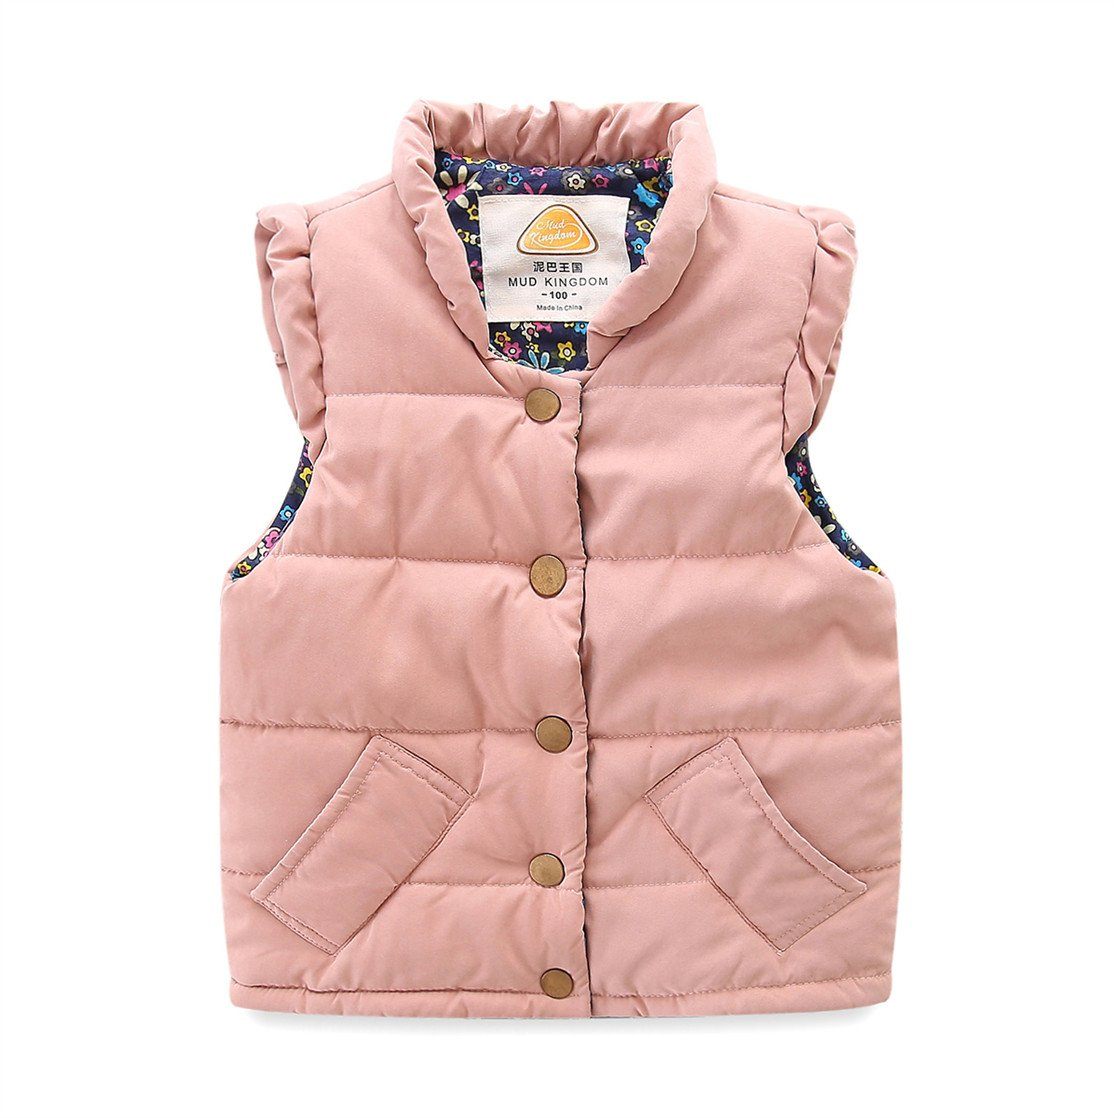 UWESPR Baby Girls Winter Cute Warm Vest Coat Light Weight Cotton Waistcoat Made in China